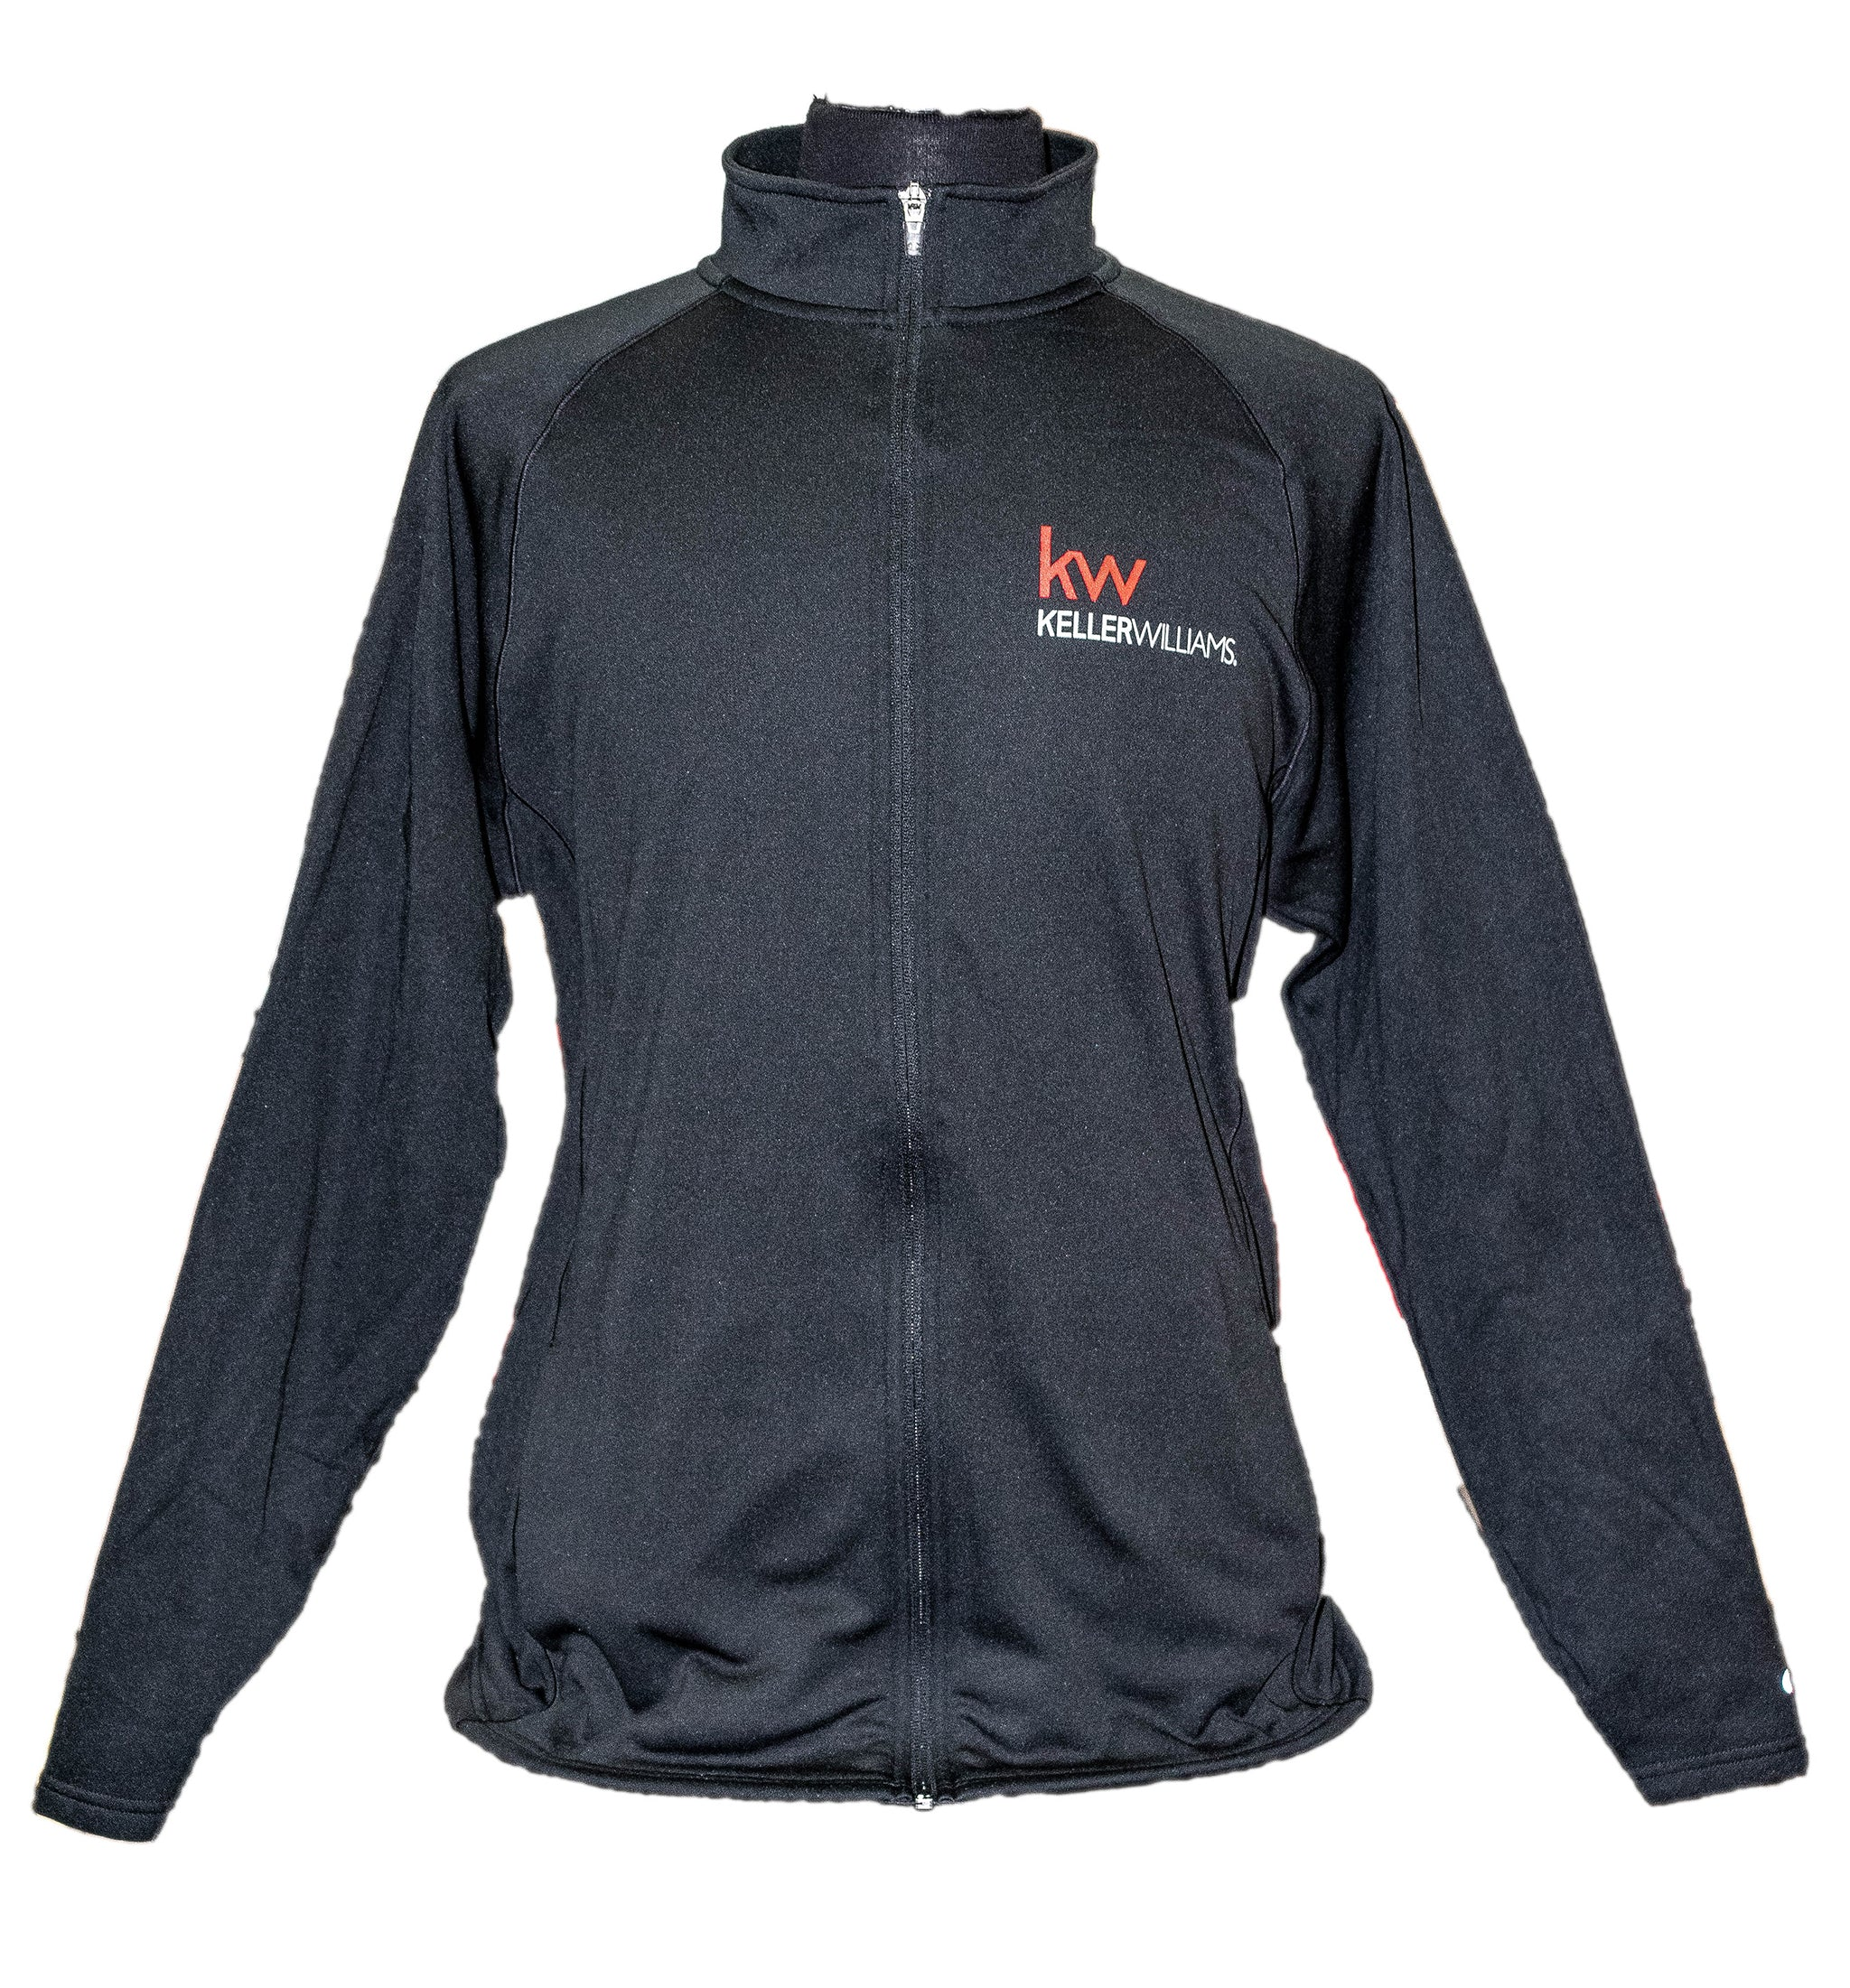 Men's KW Athletic Jacket